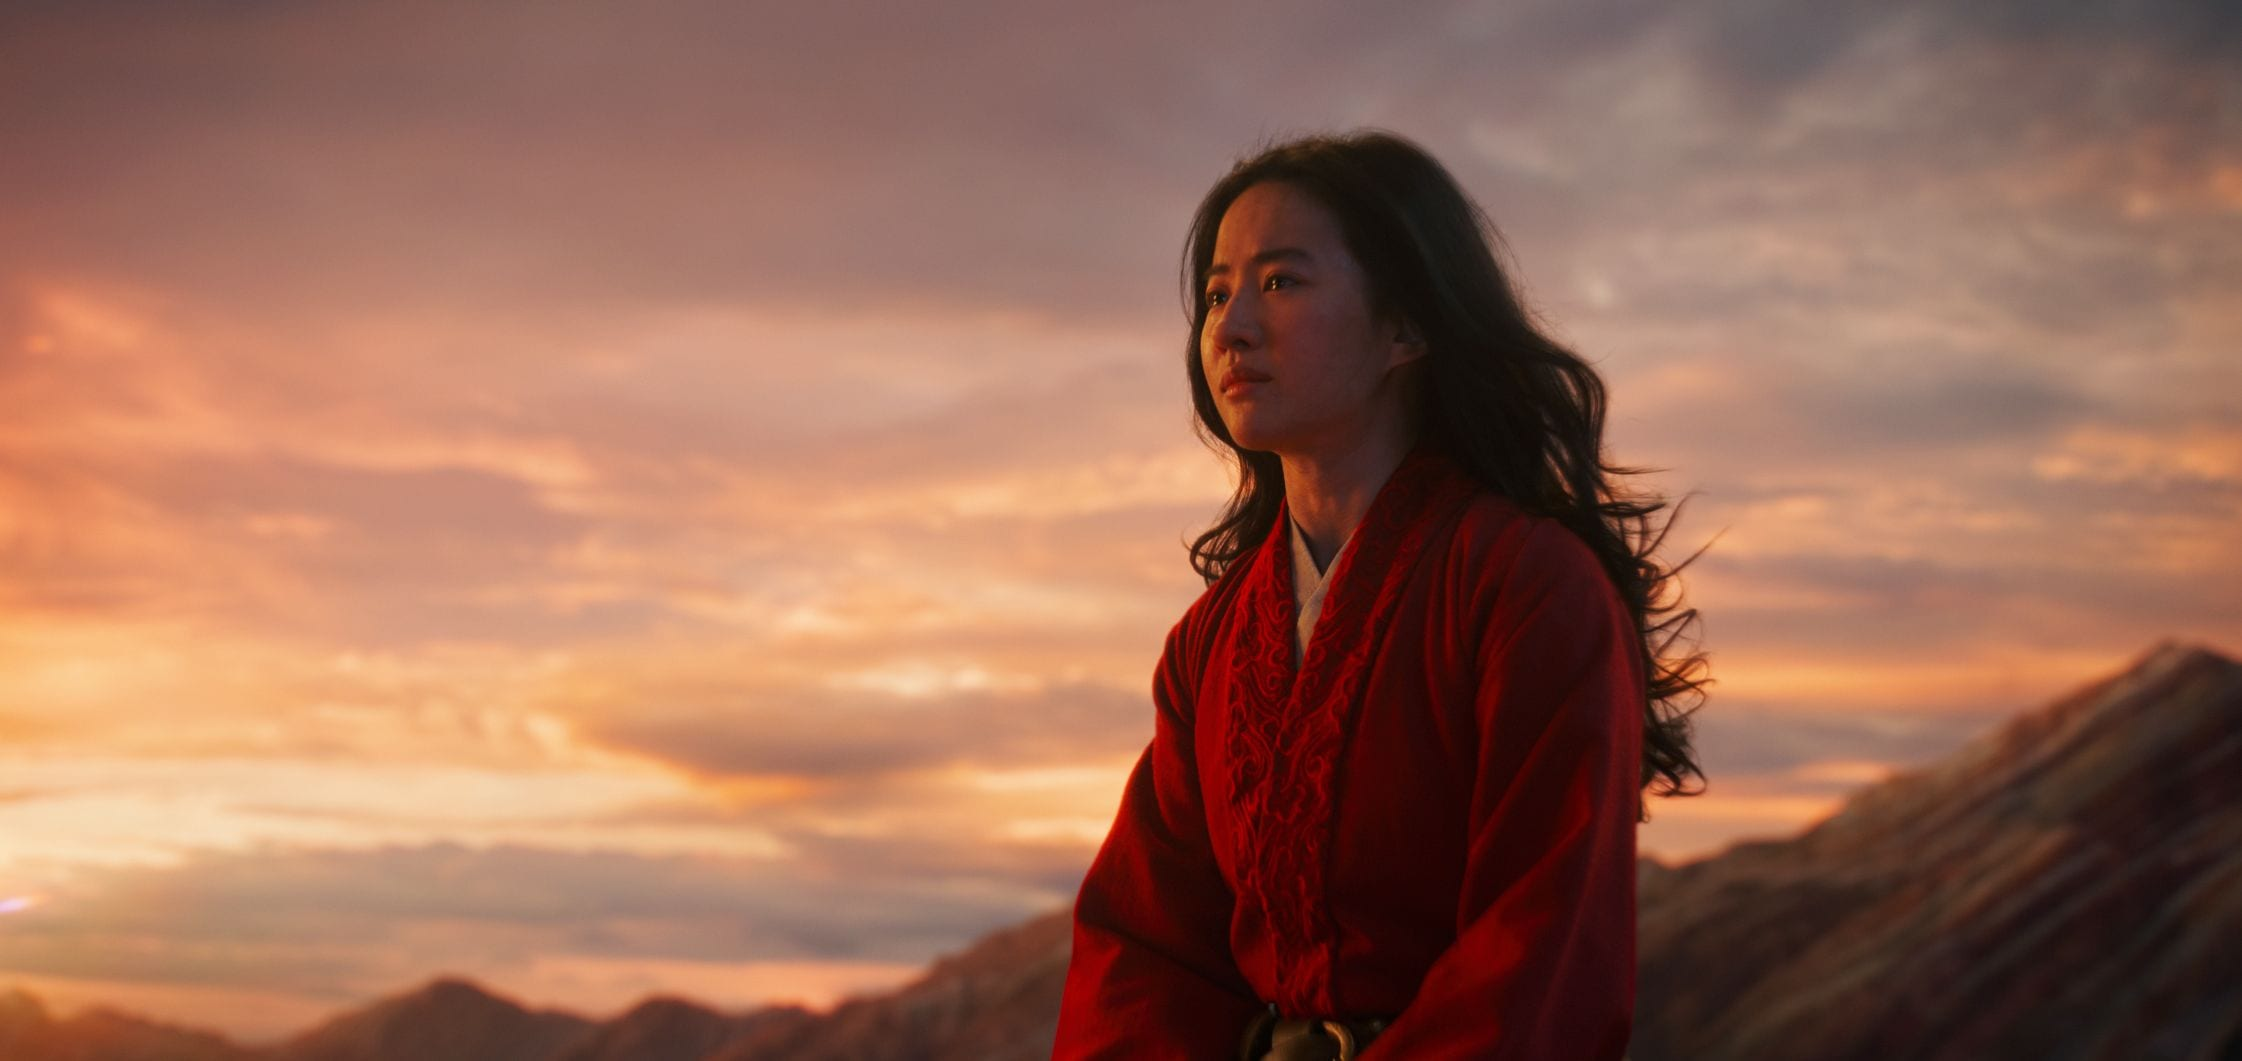 Mulan Film Review: Disney's High-Gloss Commercial for State Power | Observer